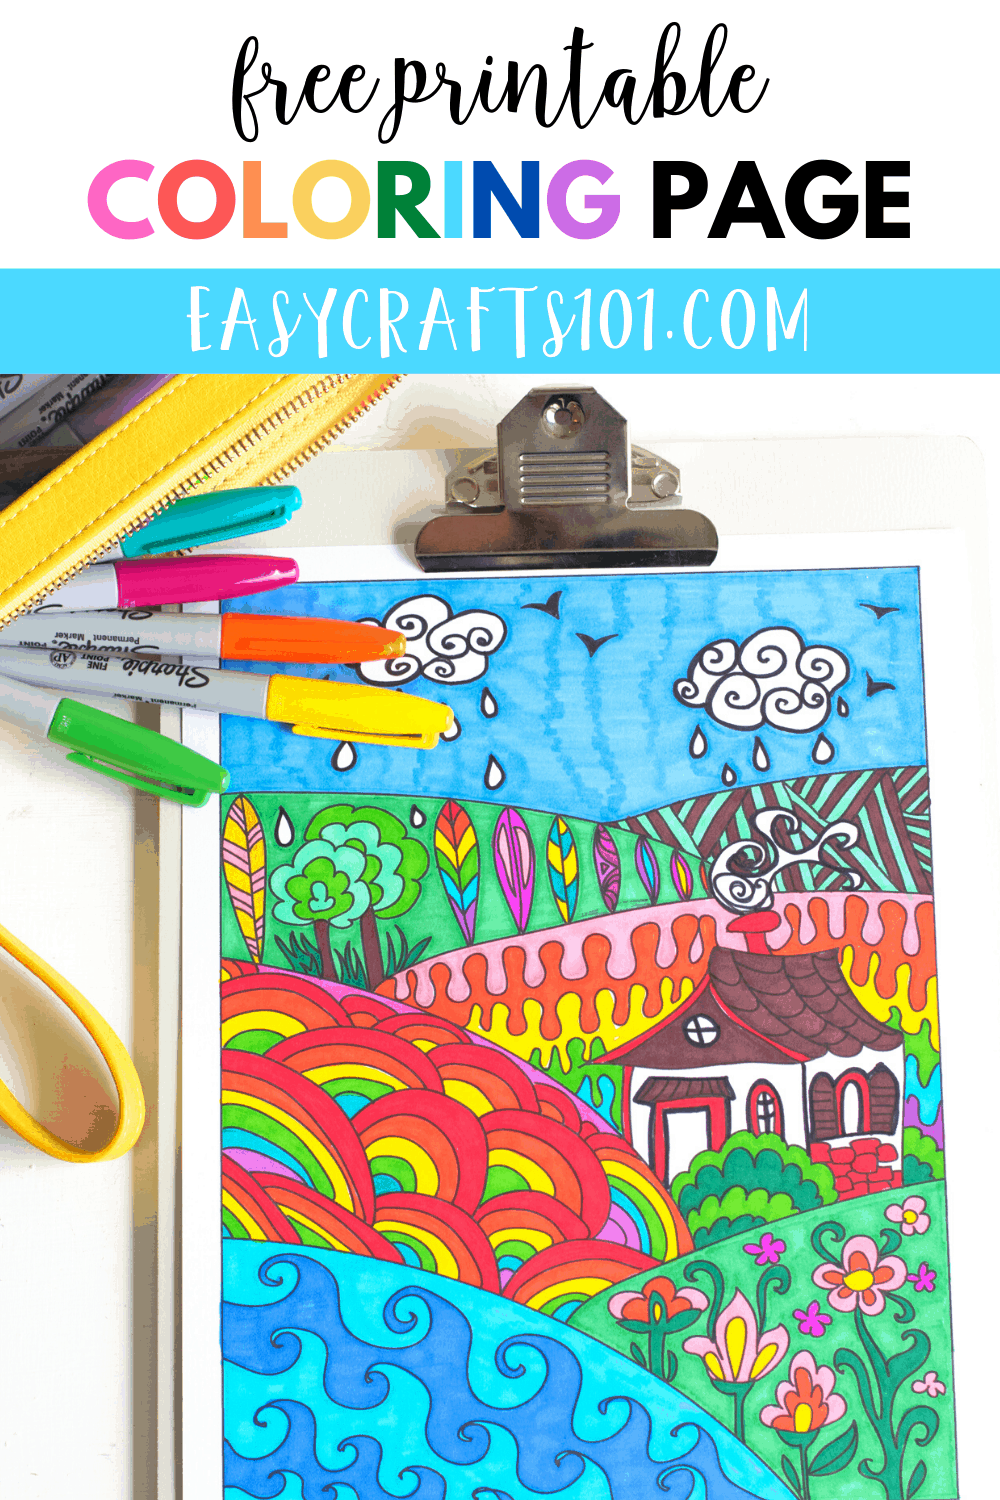 Landscape Zentangle Coloring Page Easy Crafts 101